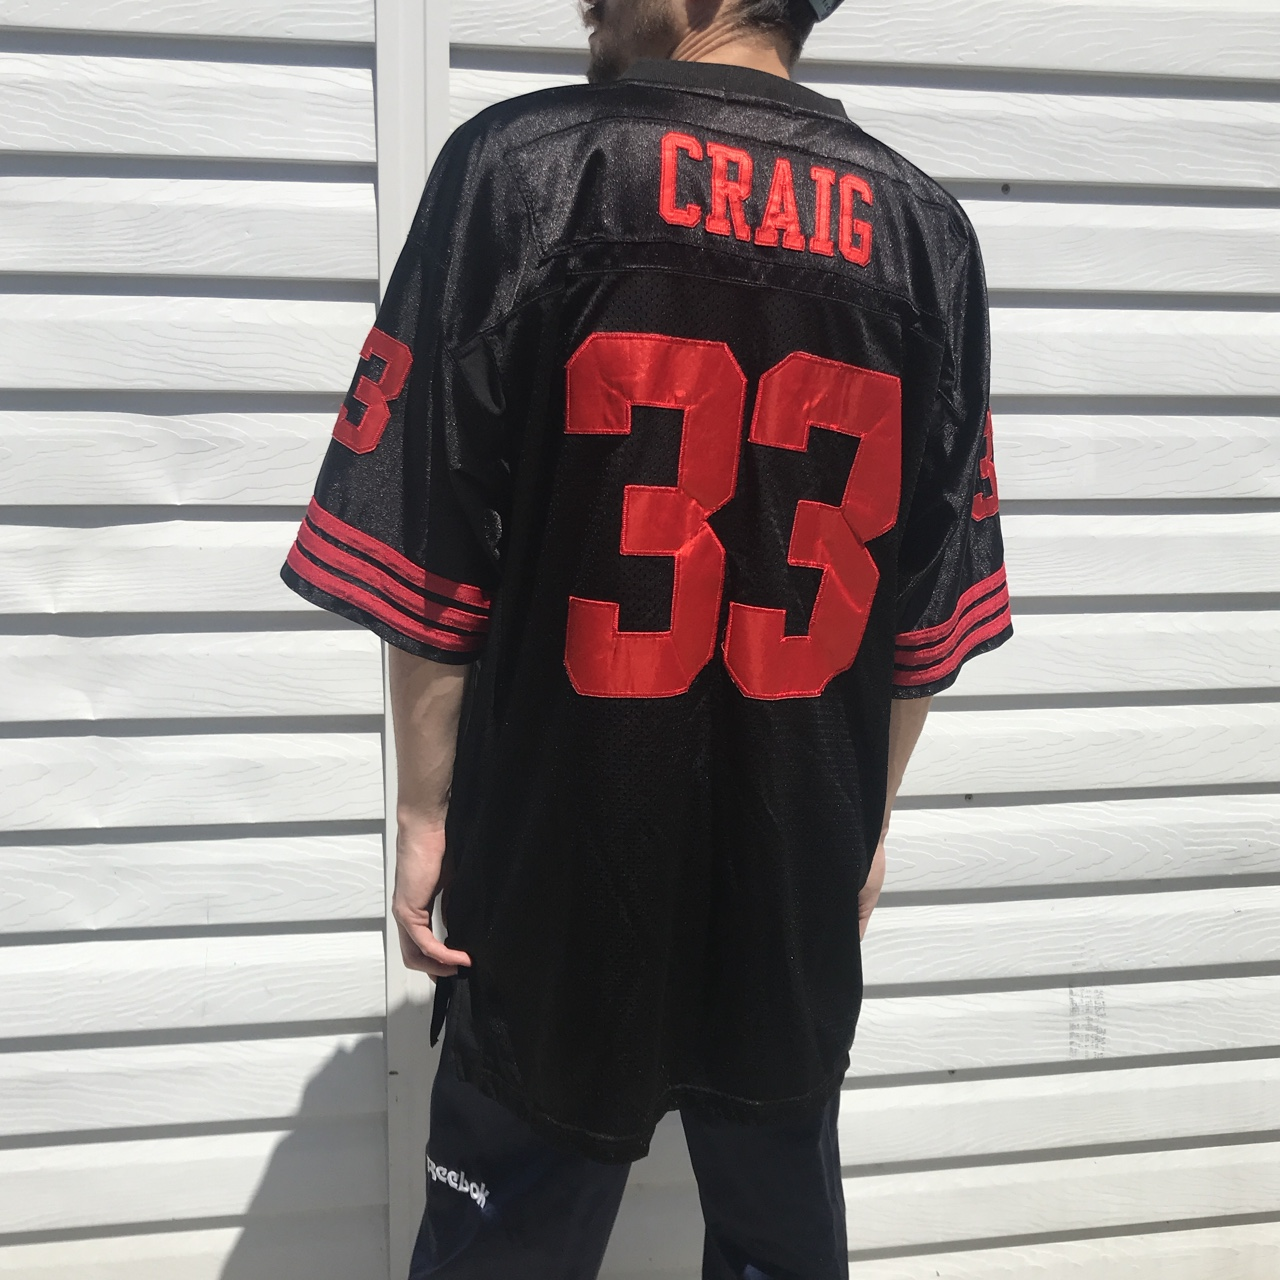 best loved 43267 fe3c2 Roger Craig #33 1989 Mitchell and Ness throwback... - Depop